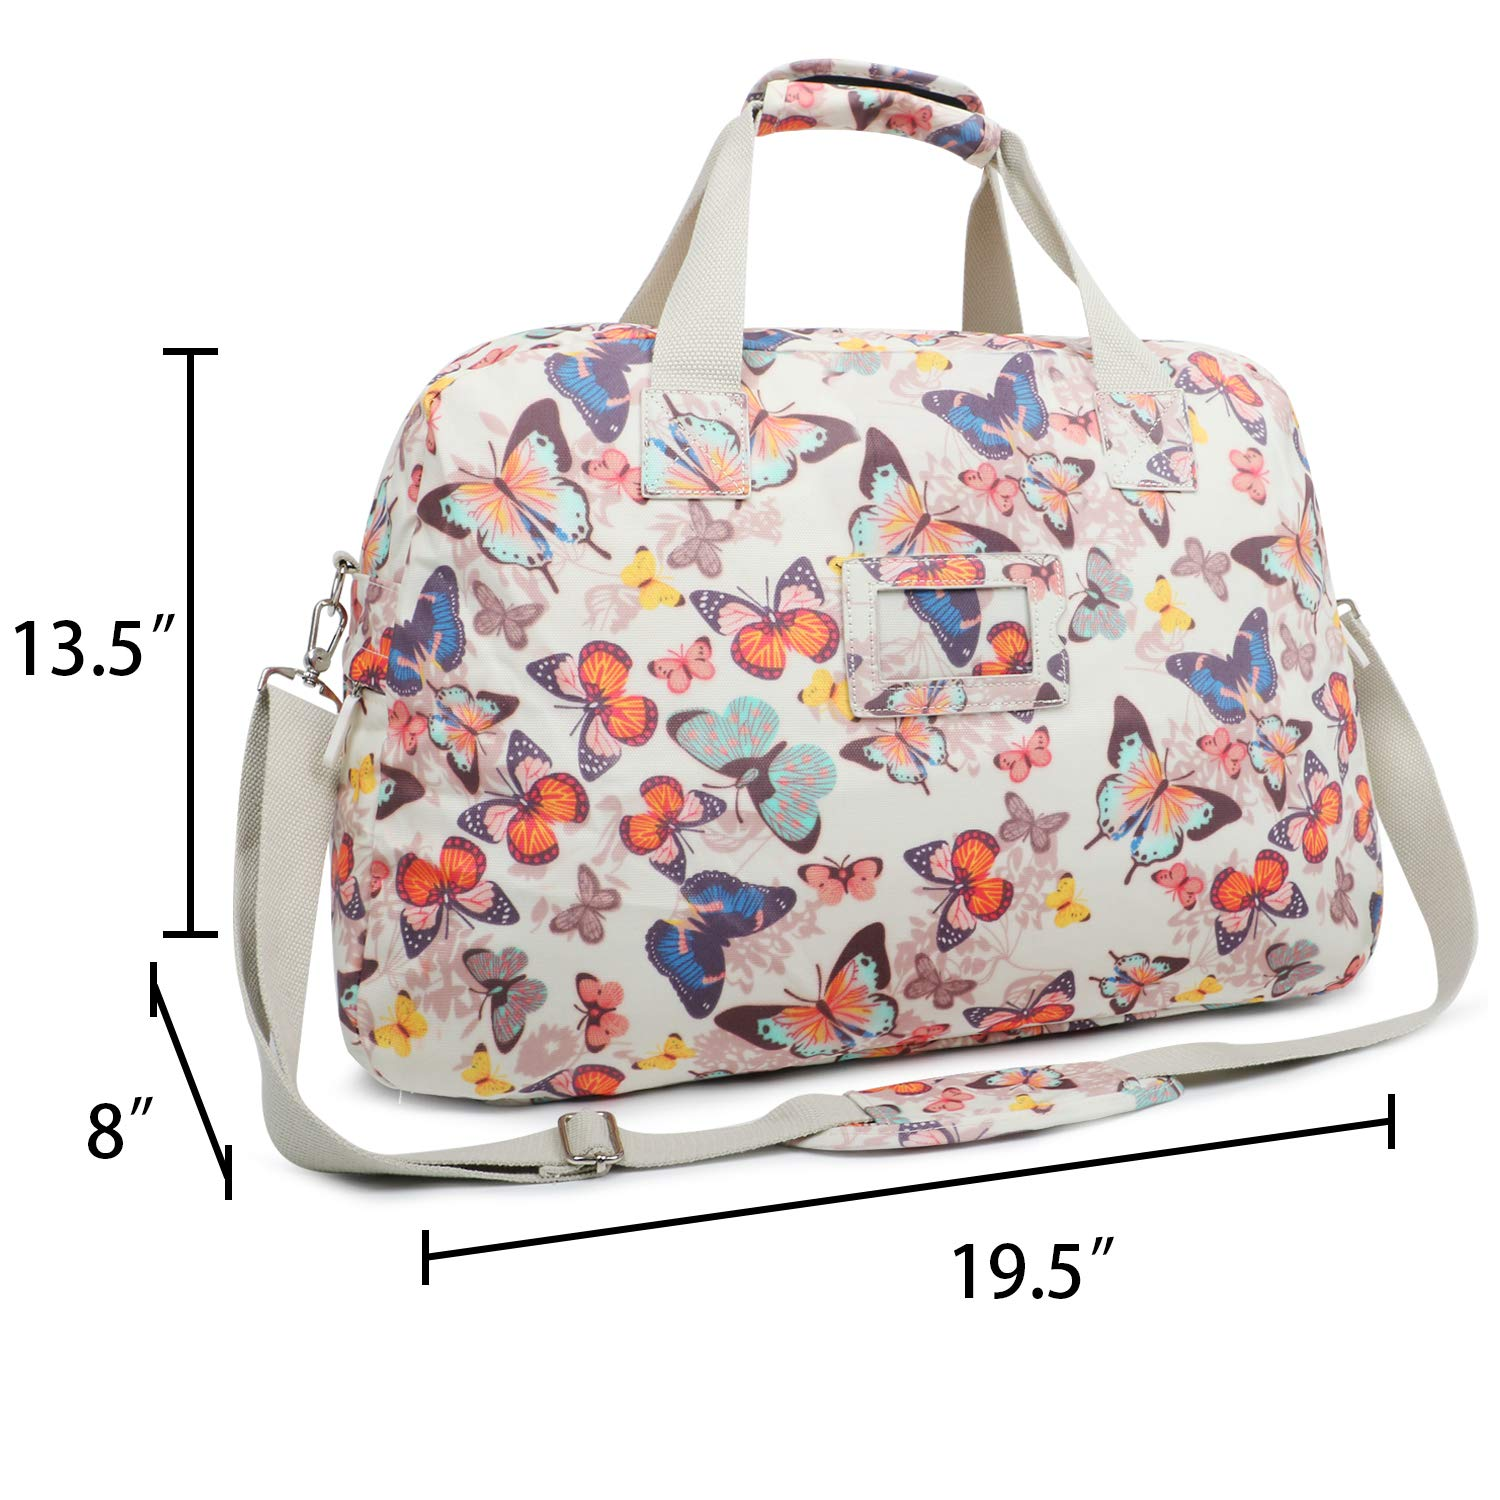 Oflamn 29L Large Floral Duffle Bag Water Resistant Canvas Travel Weekender Overnight Gym Bag for Women Butterfly